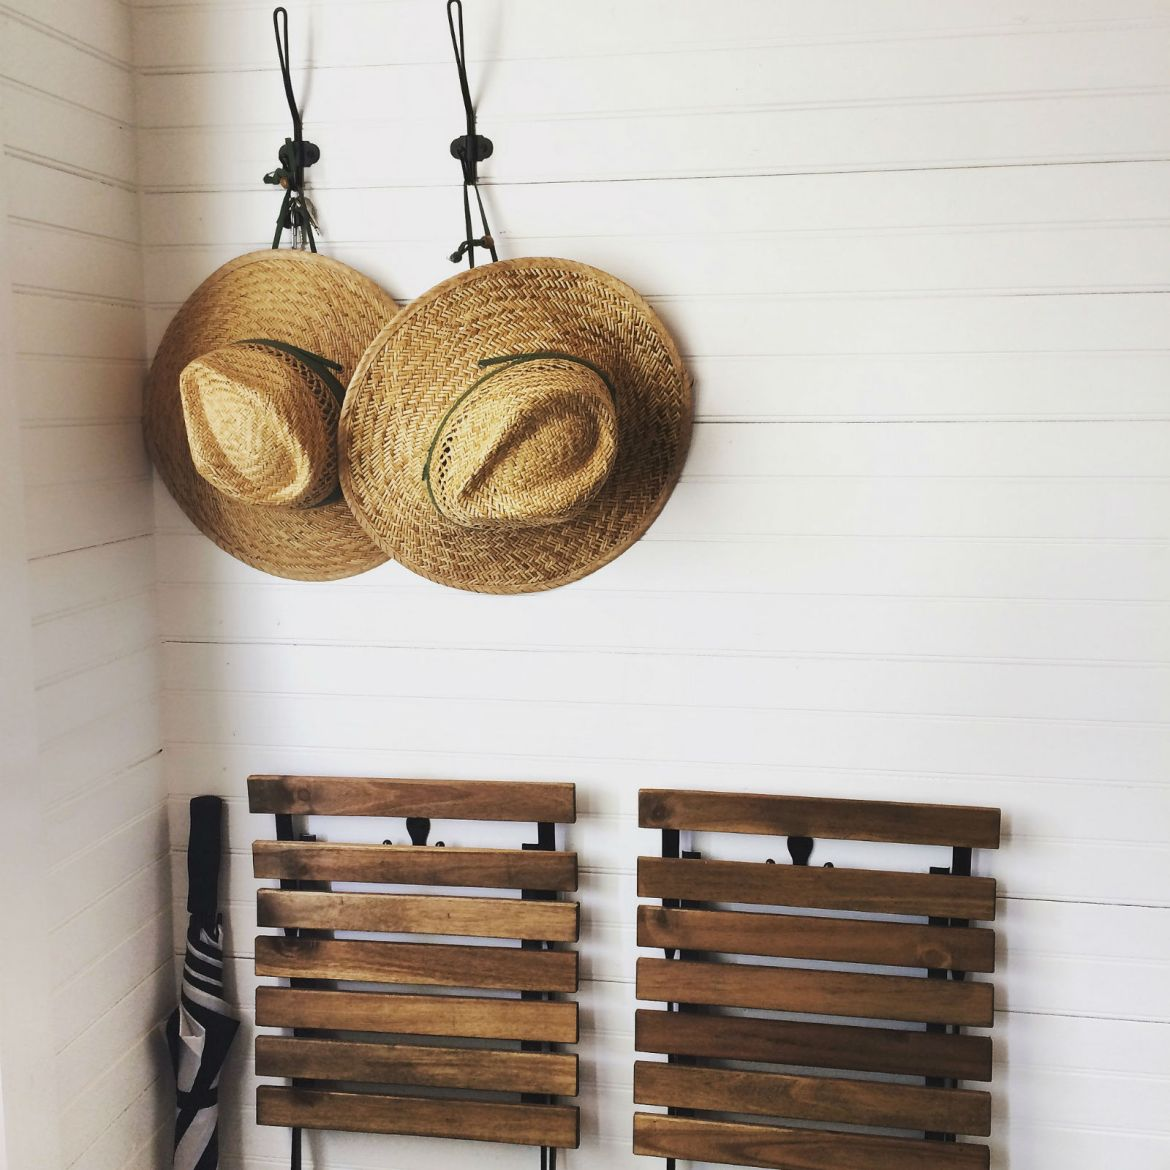 Coat hooks, straw hats, and foldable chairs in Ybor City's newest tiny house